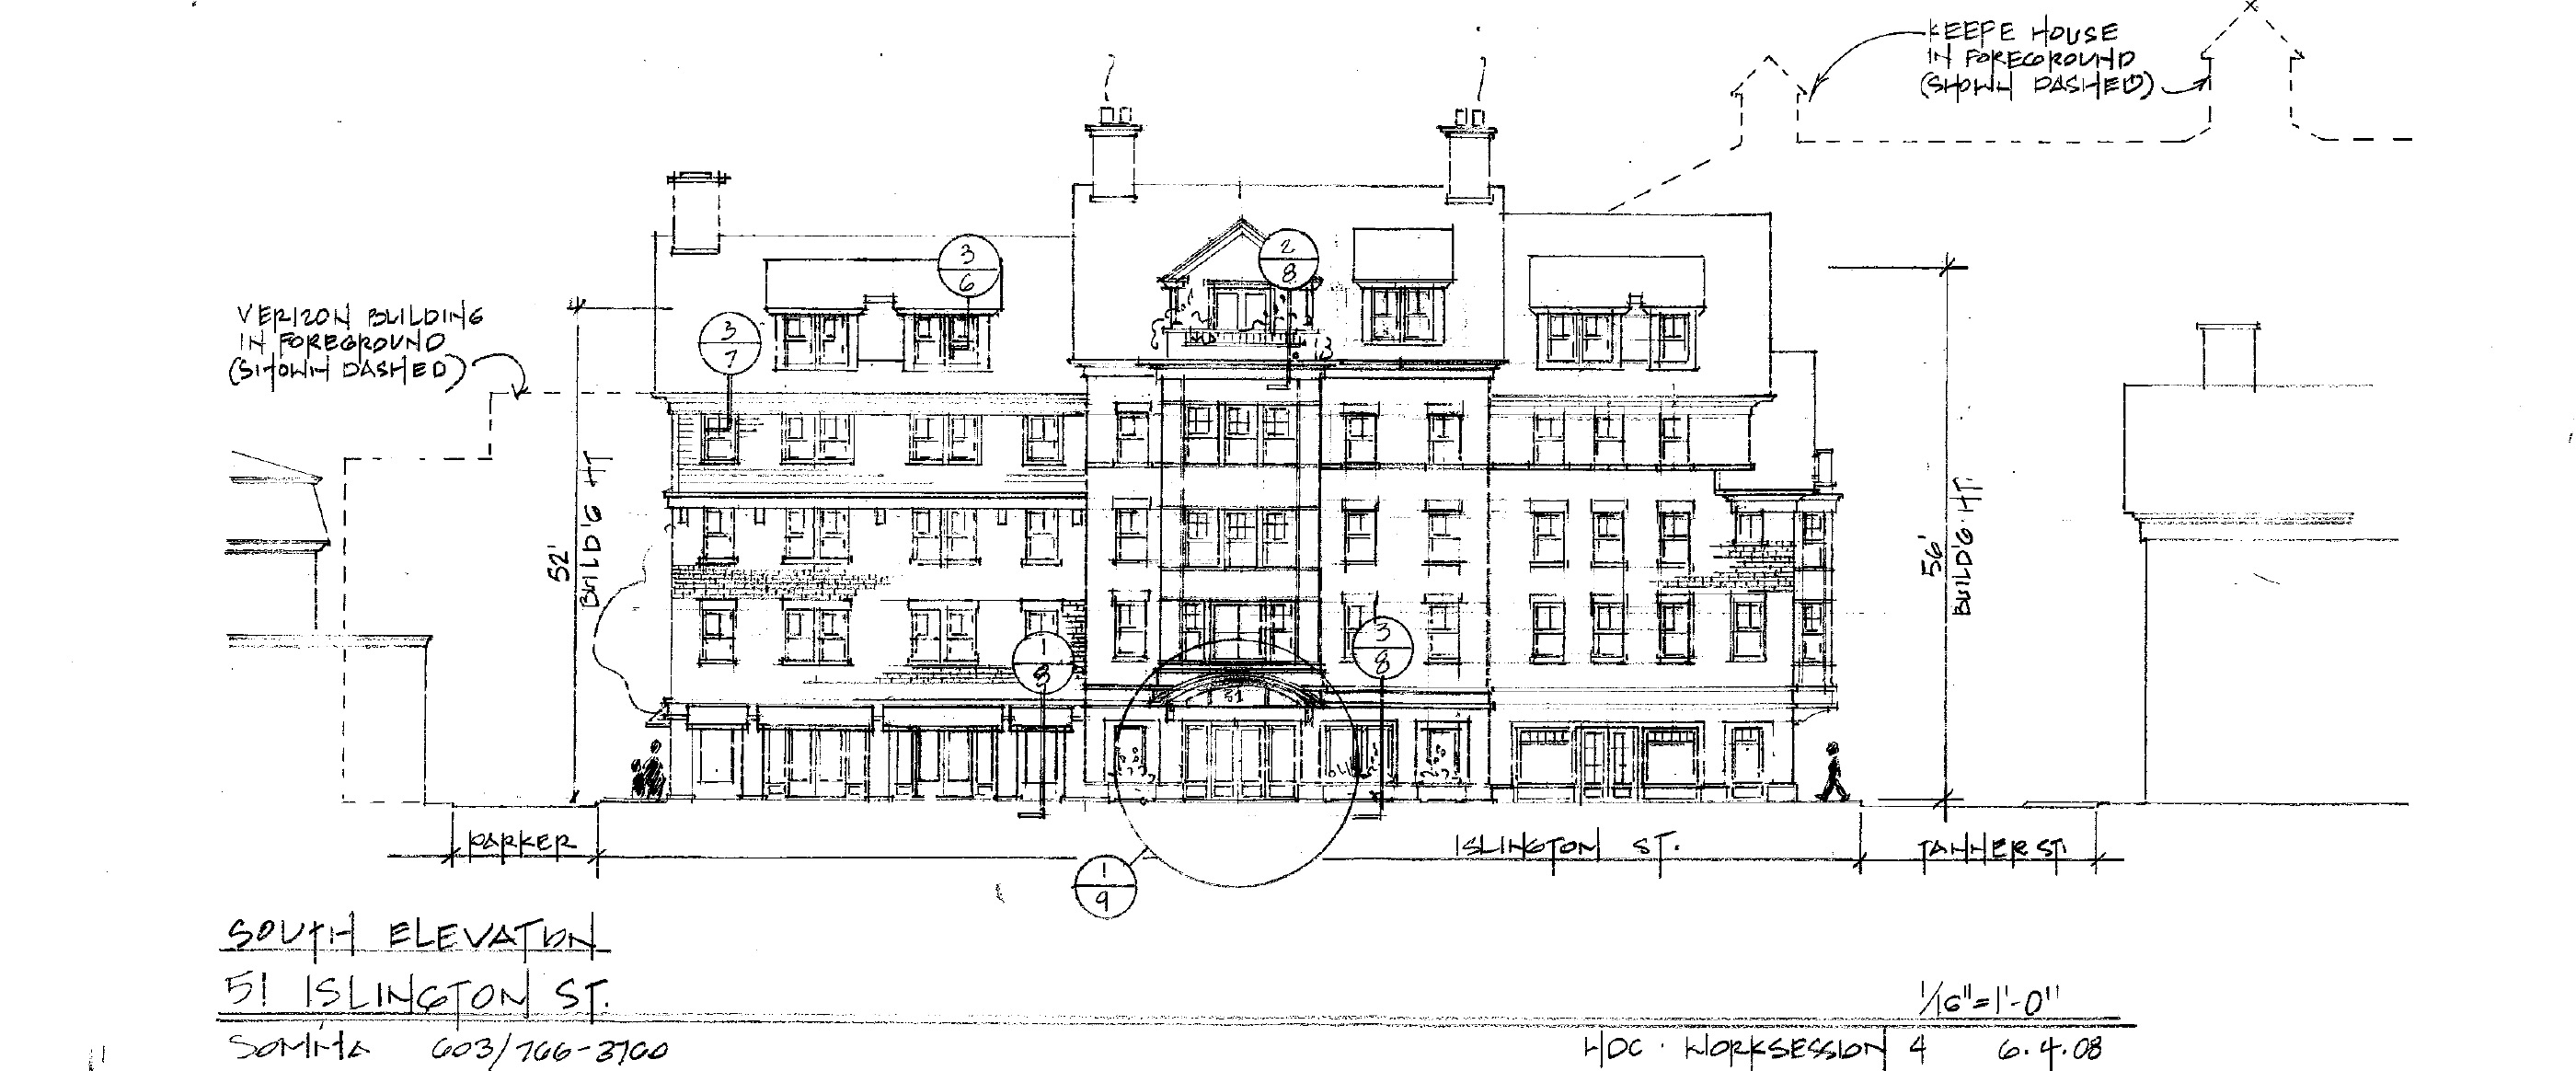 51-islington-exterior-illustration2-somma